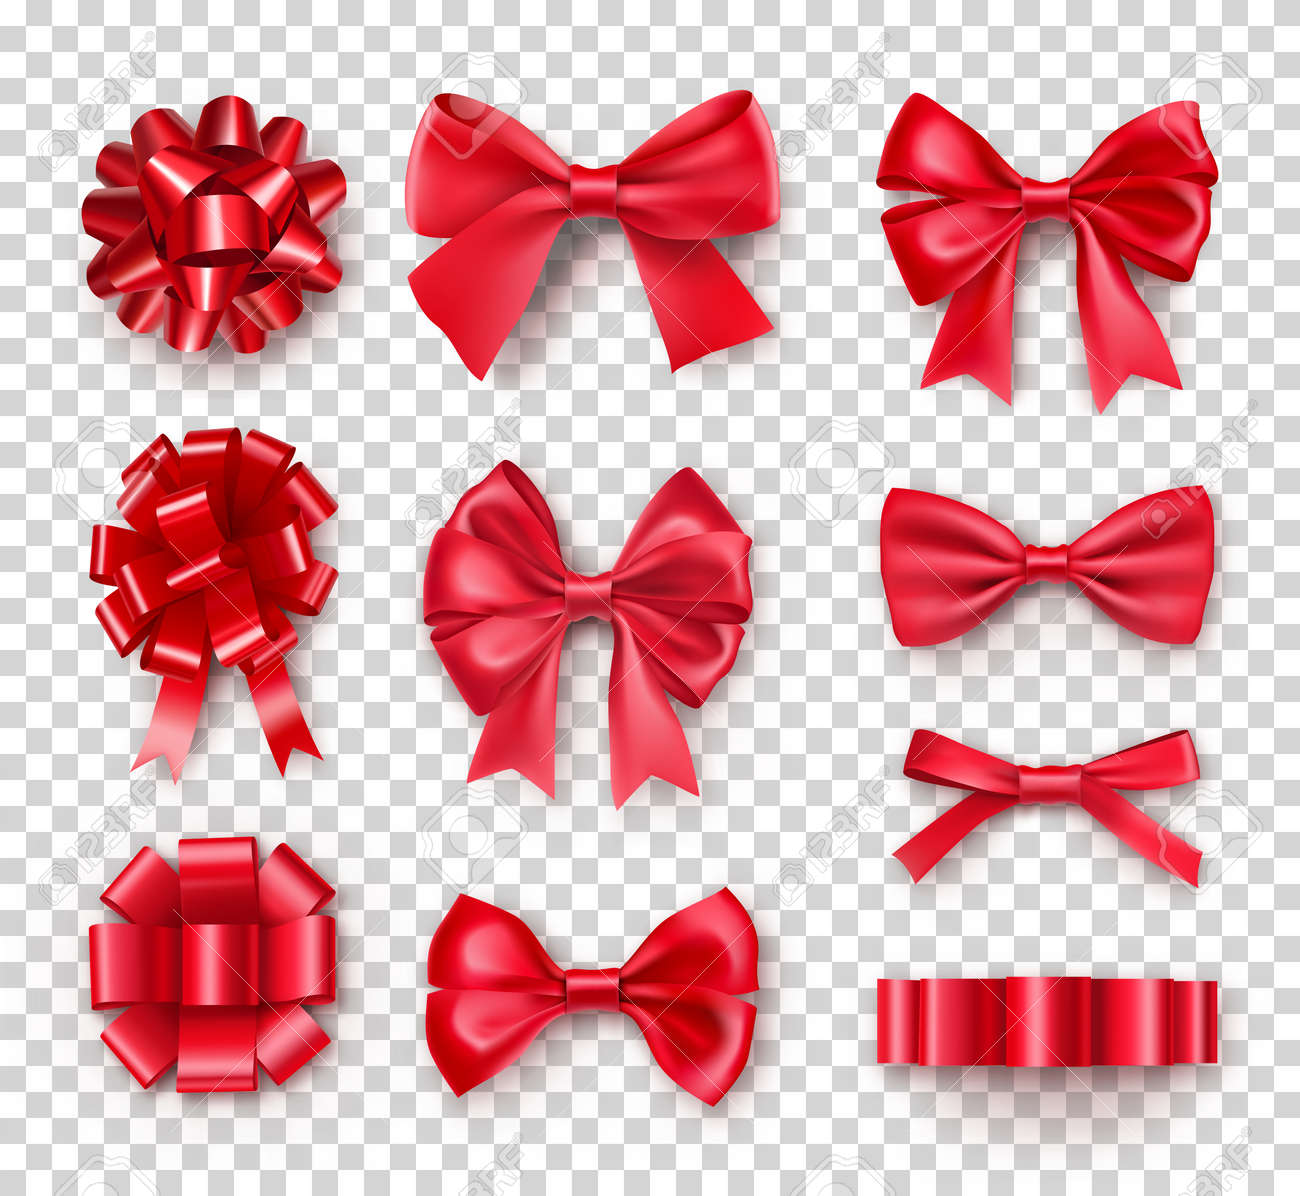 Romantic red gift bows with ribbons. Realistic decoration for holidays presents and cards. Elegant object from silk vector illustration. Chrismas or birthday decor isolated on transparent background - 123795832